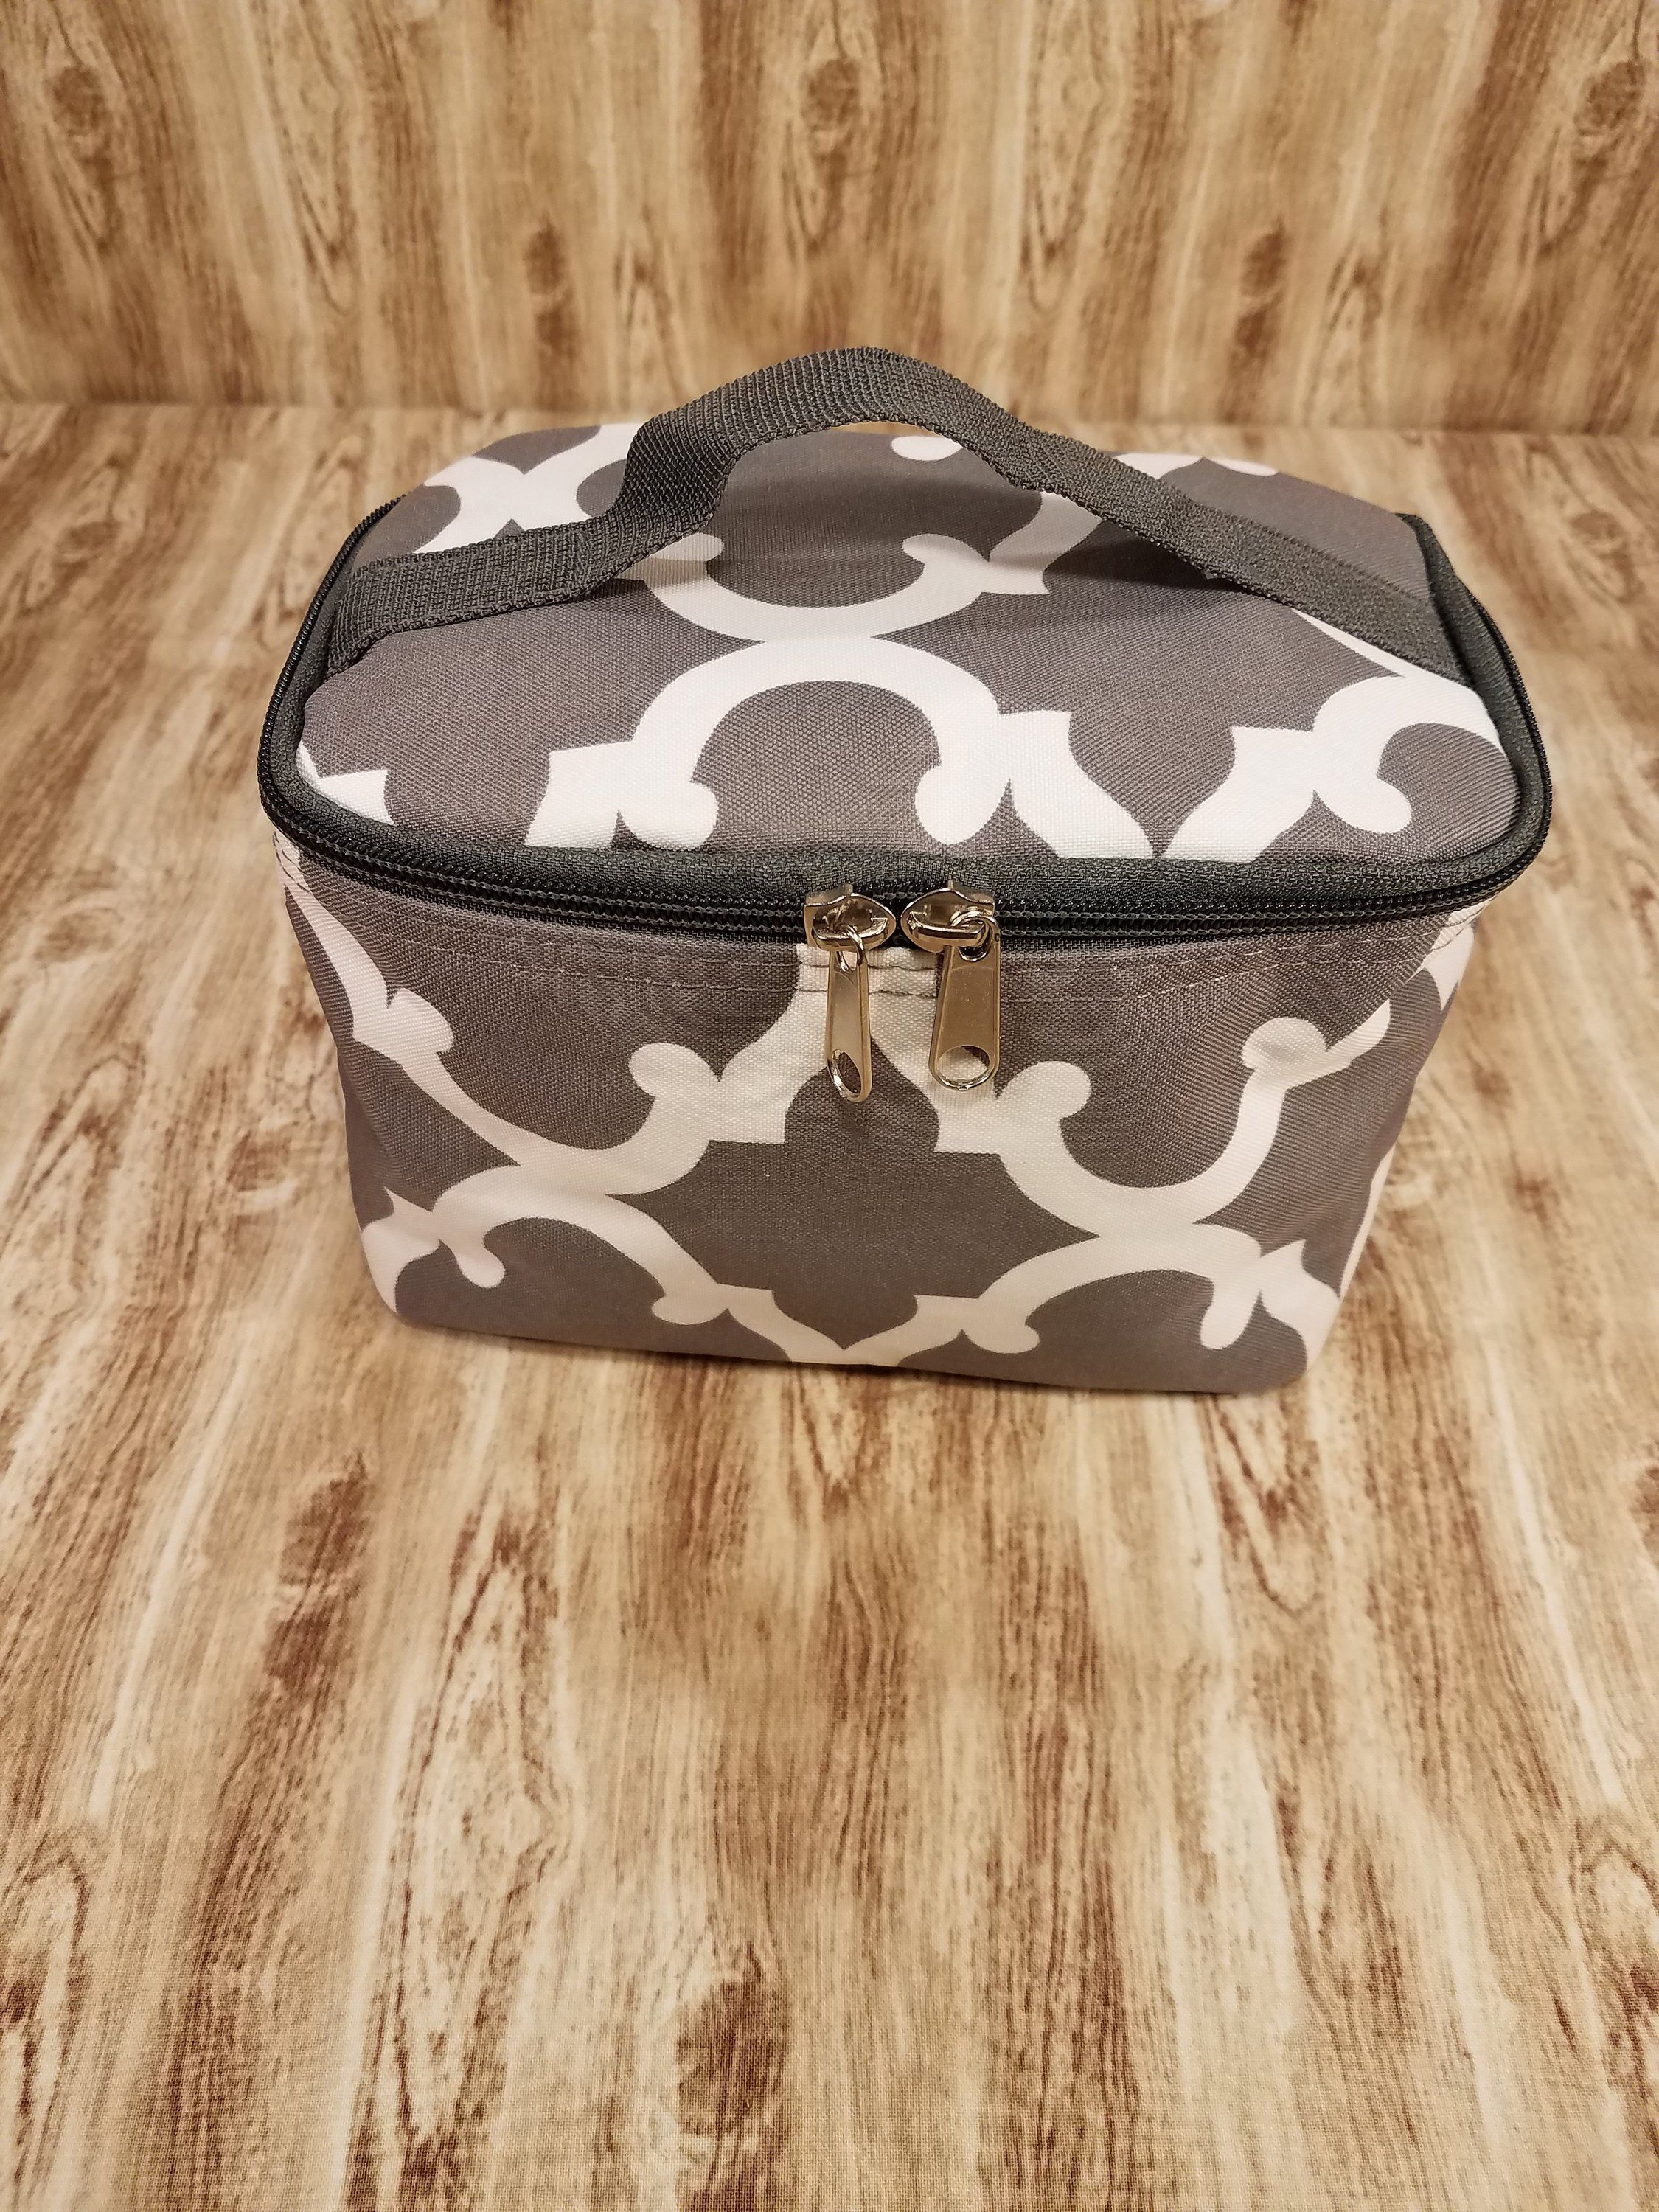 Personalized Train Case Monogrammed Makeup Bag